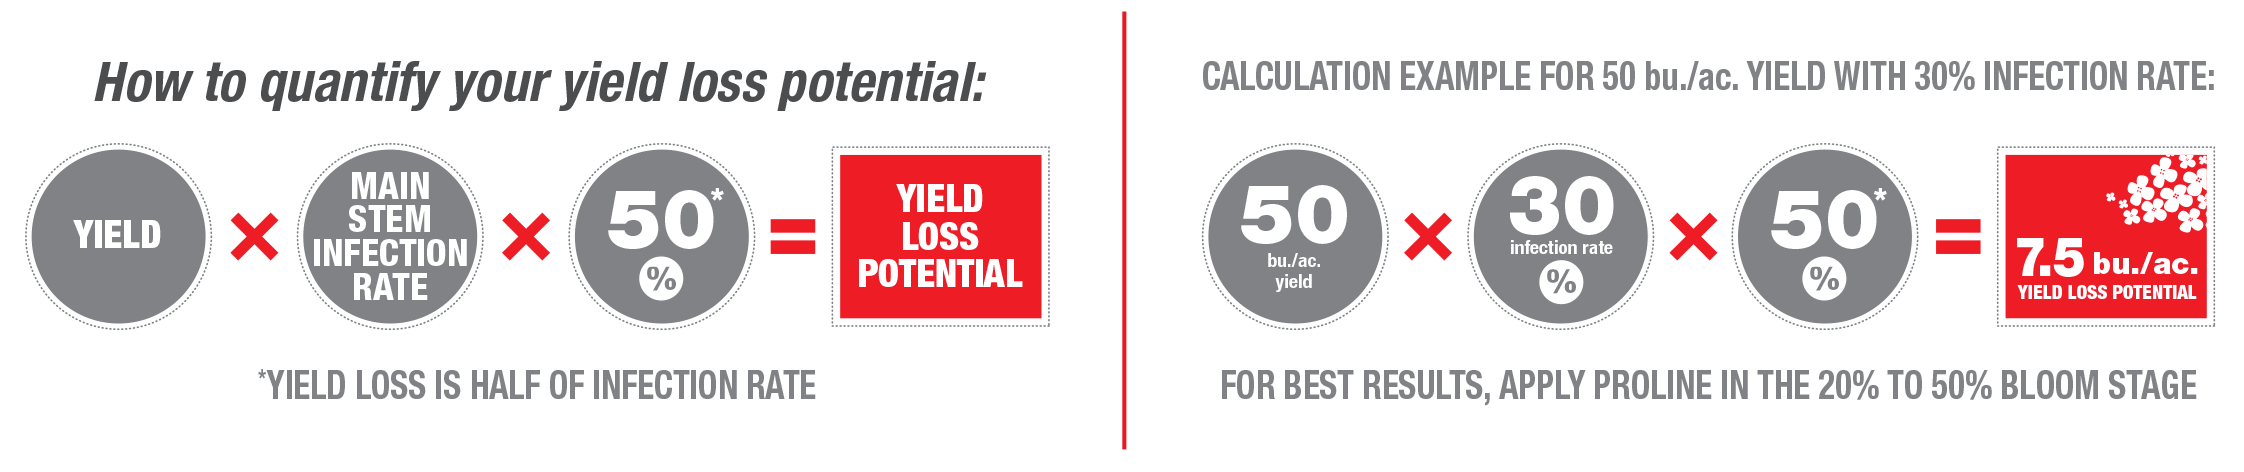 How to quantify your yield loss potential.